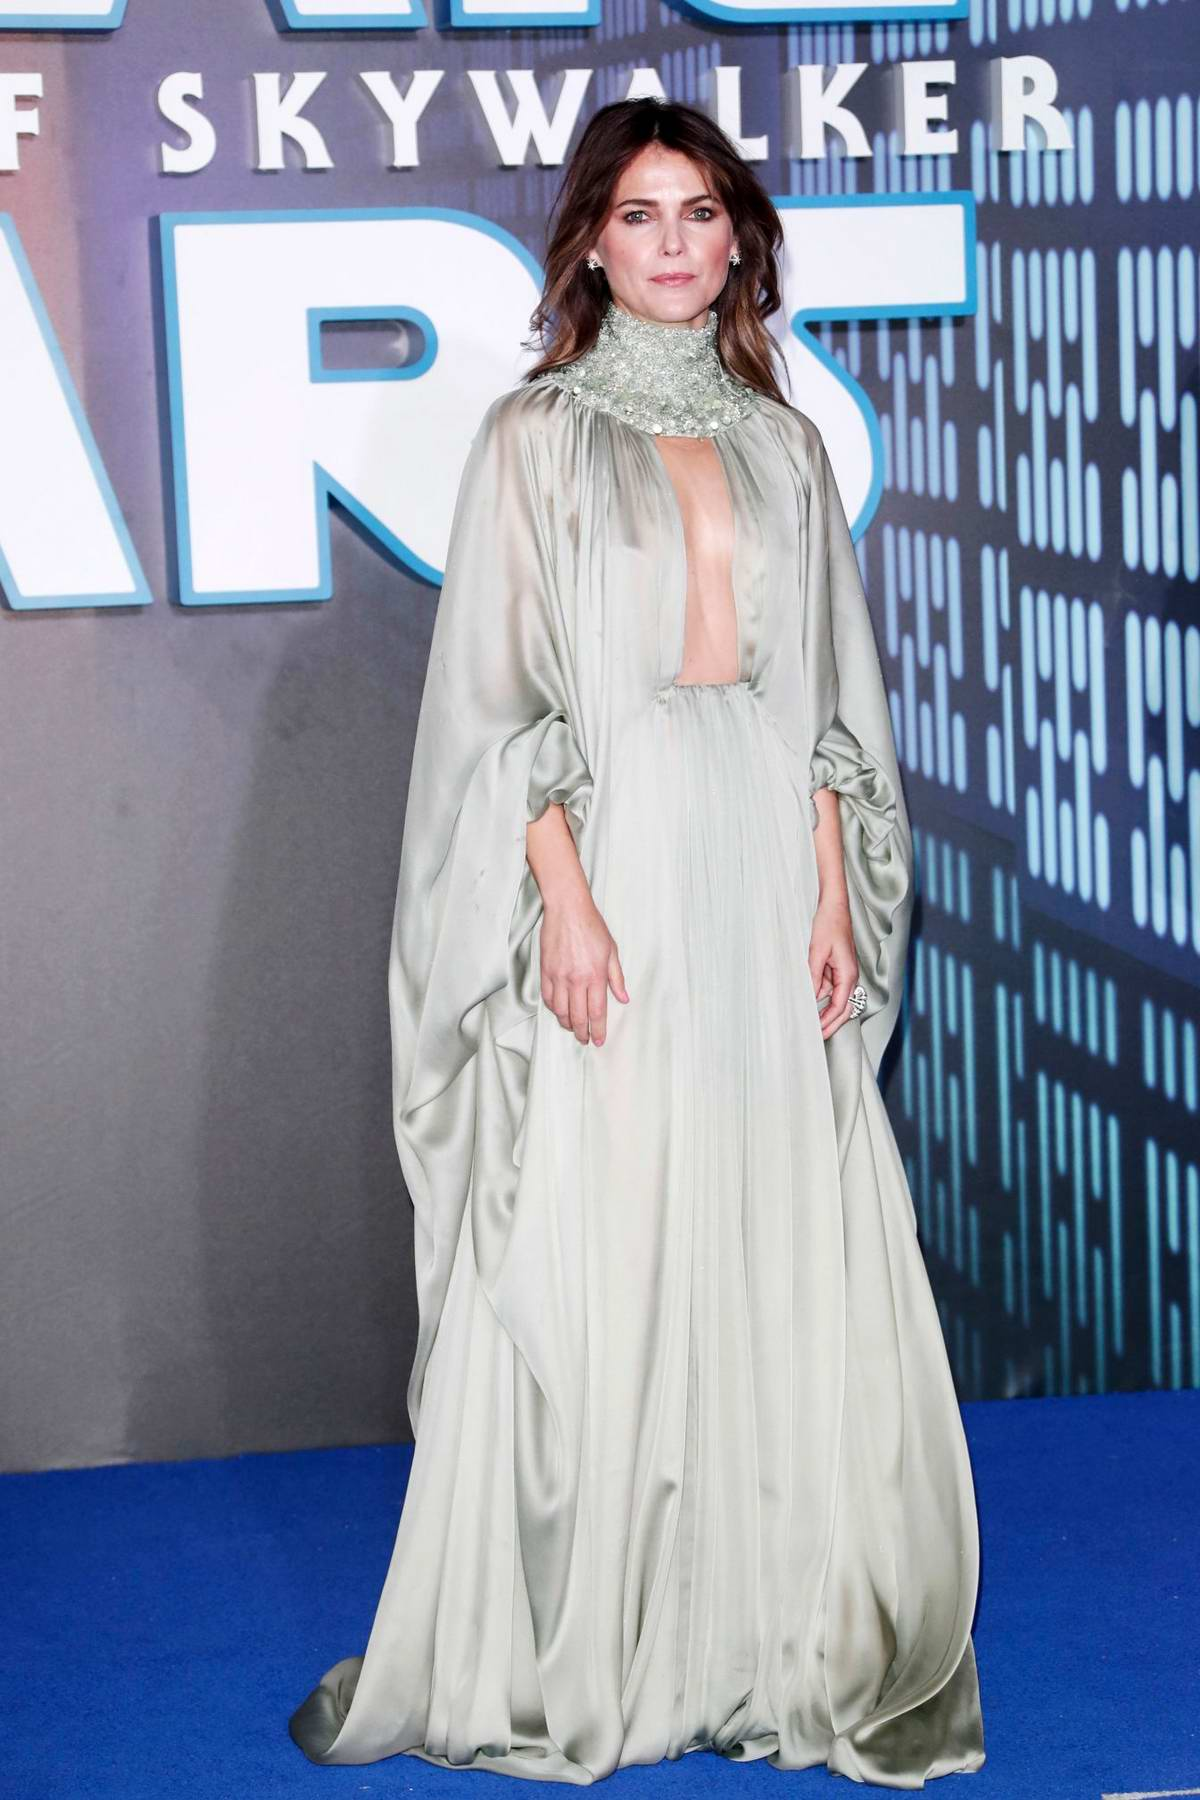 Keri Russell Attends The Premiere Of Star Wars The Rise Of Skywalker In London Uk 181219 1